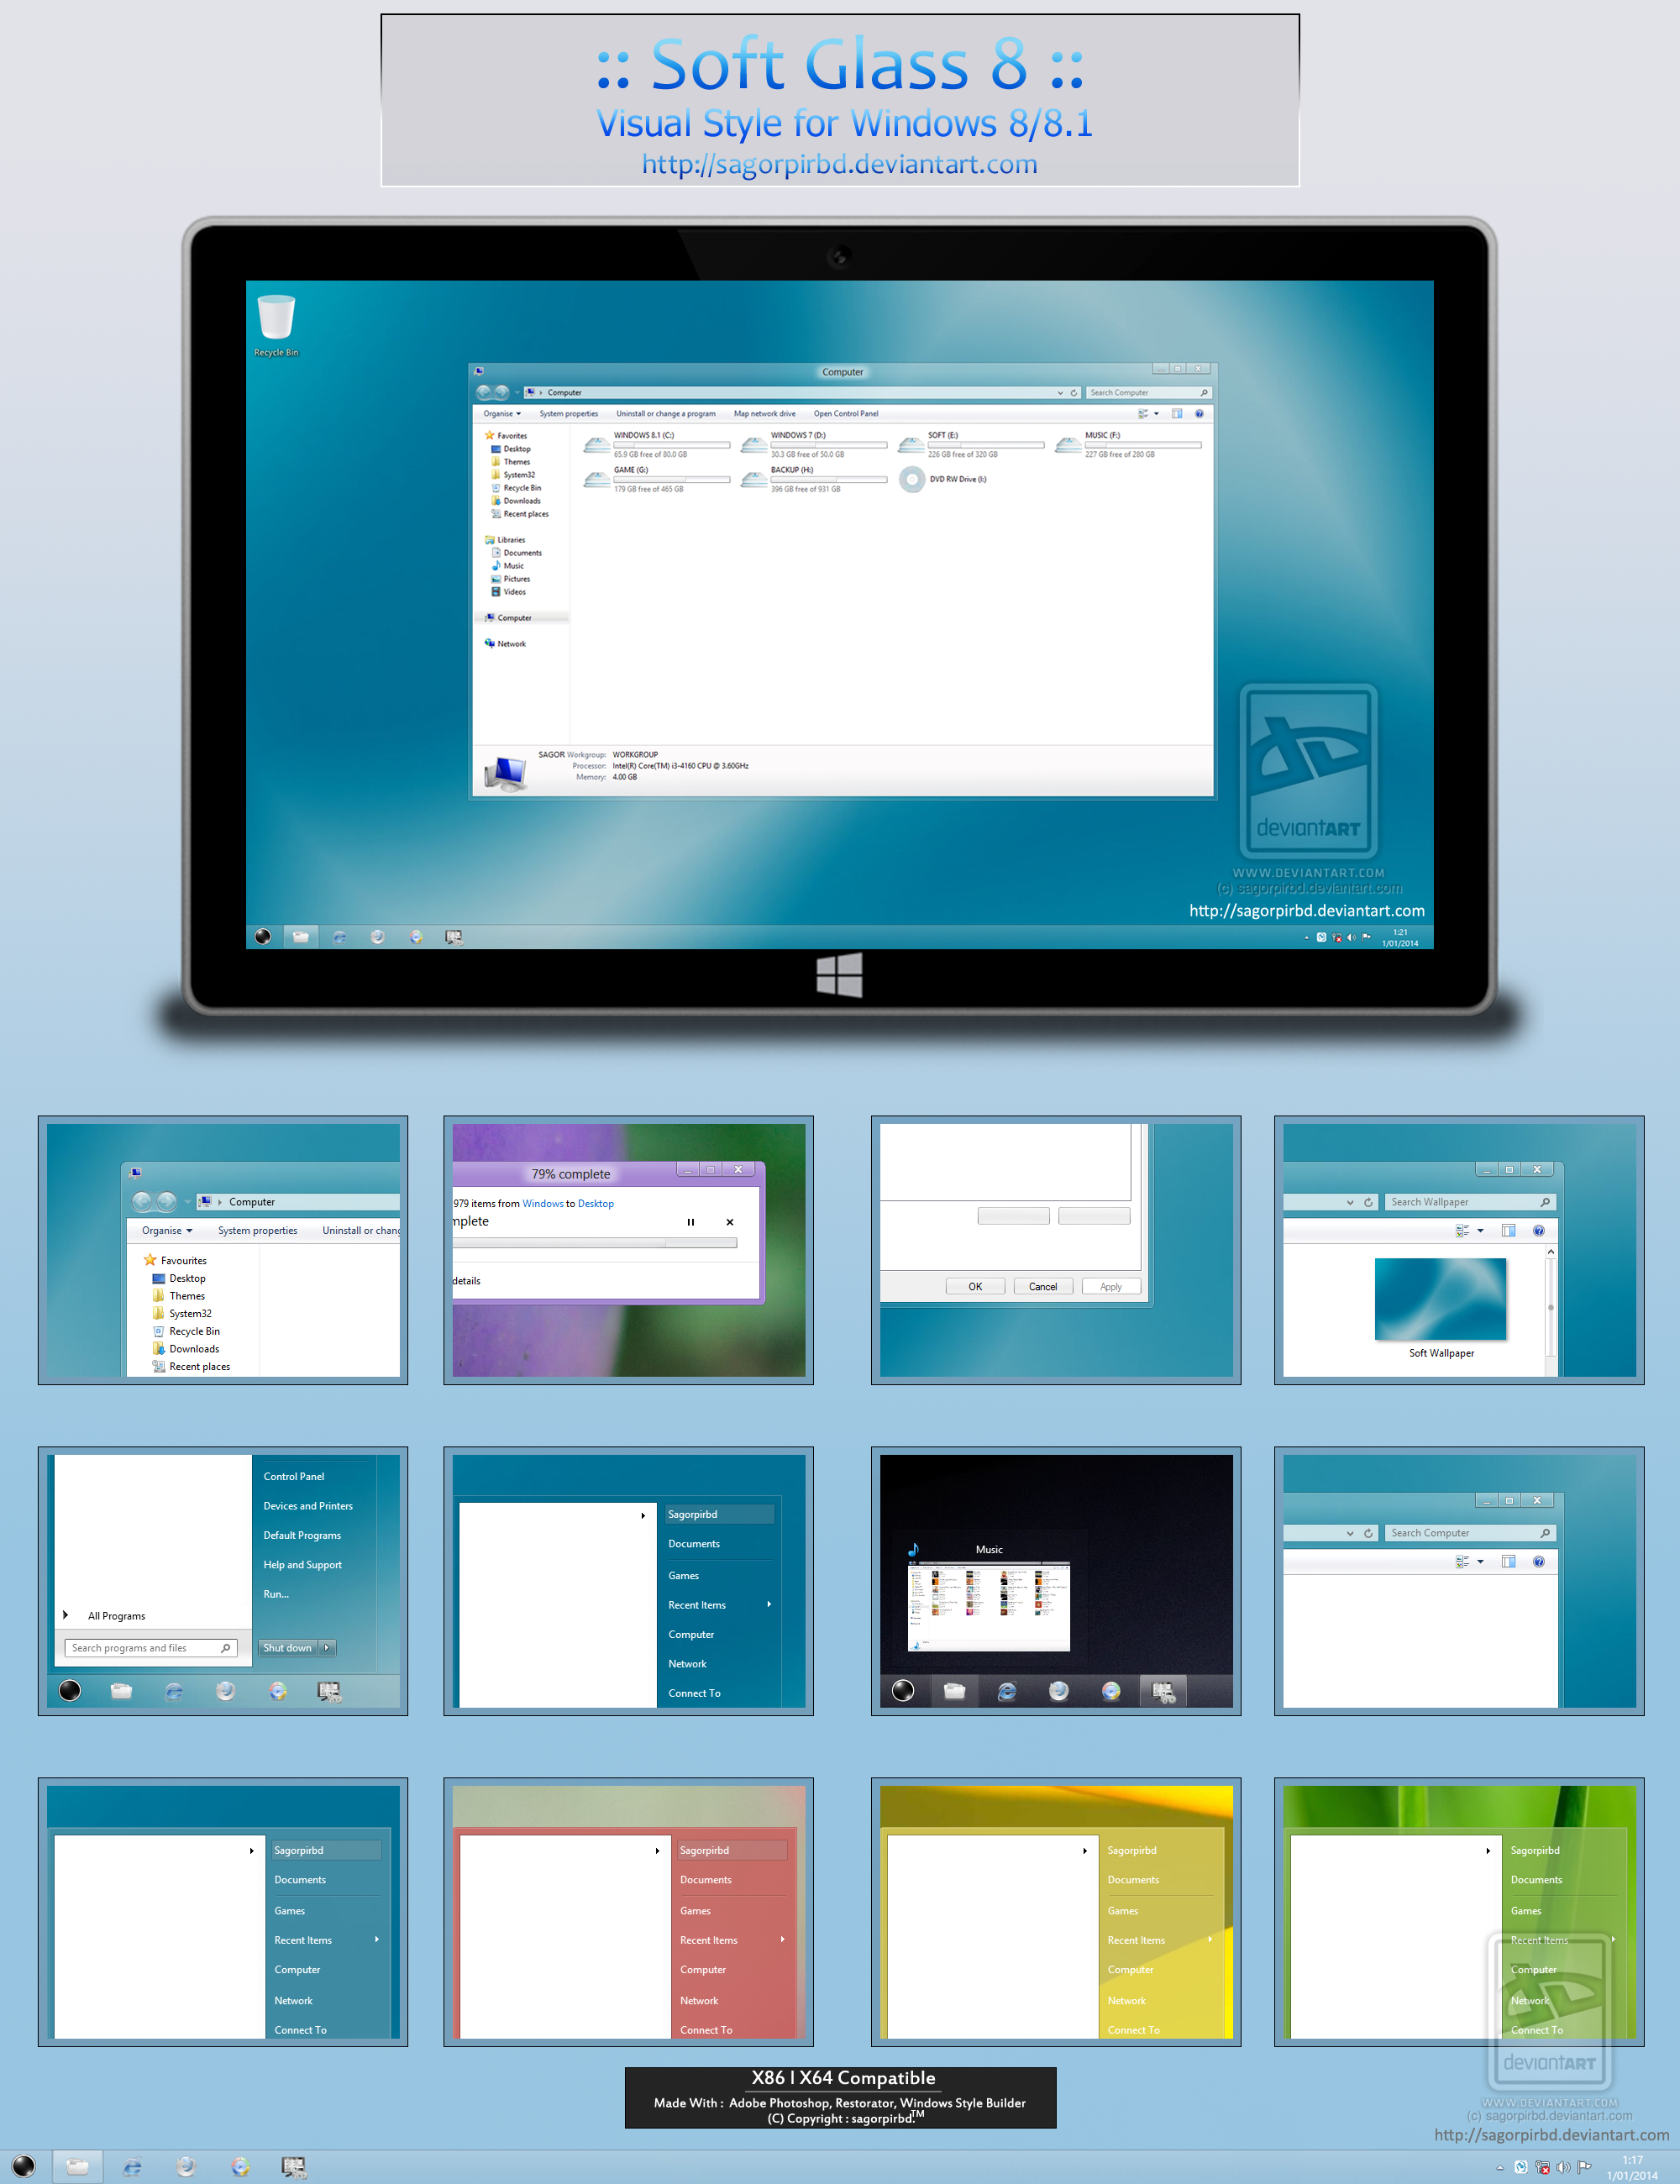 :: Soft Glass 8 :: for Win 8/8.1 by sagorpirbd